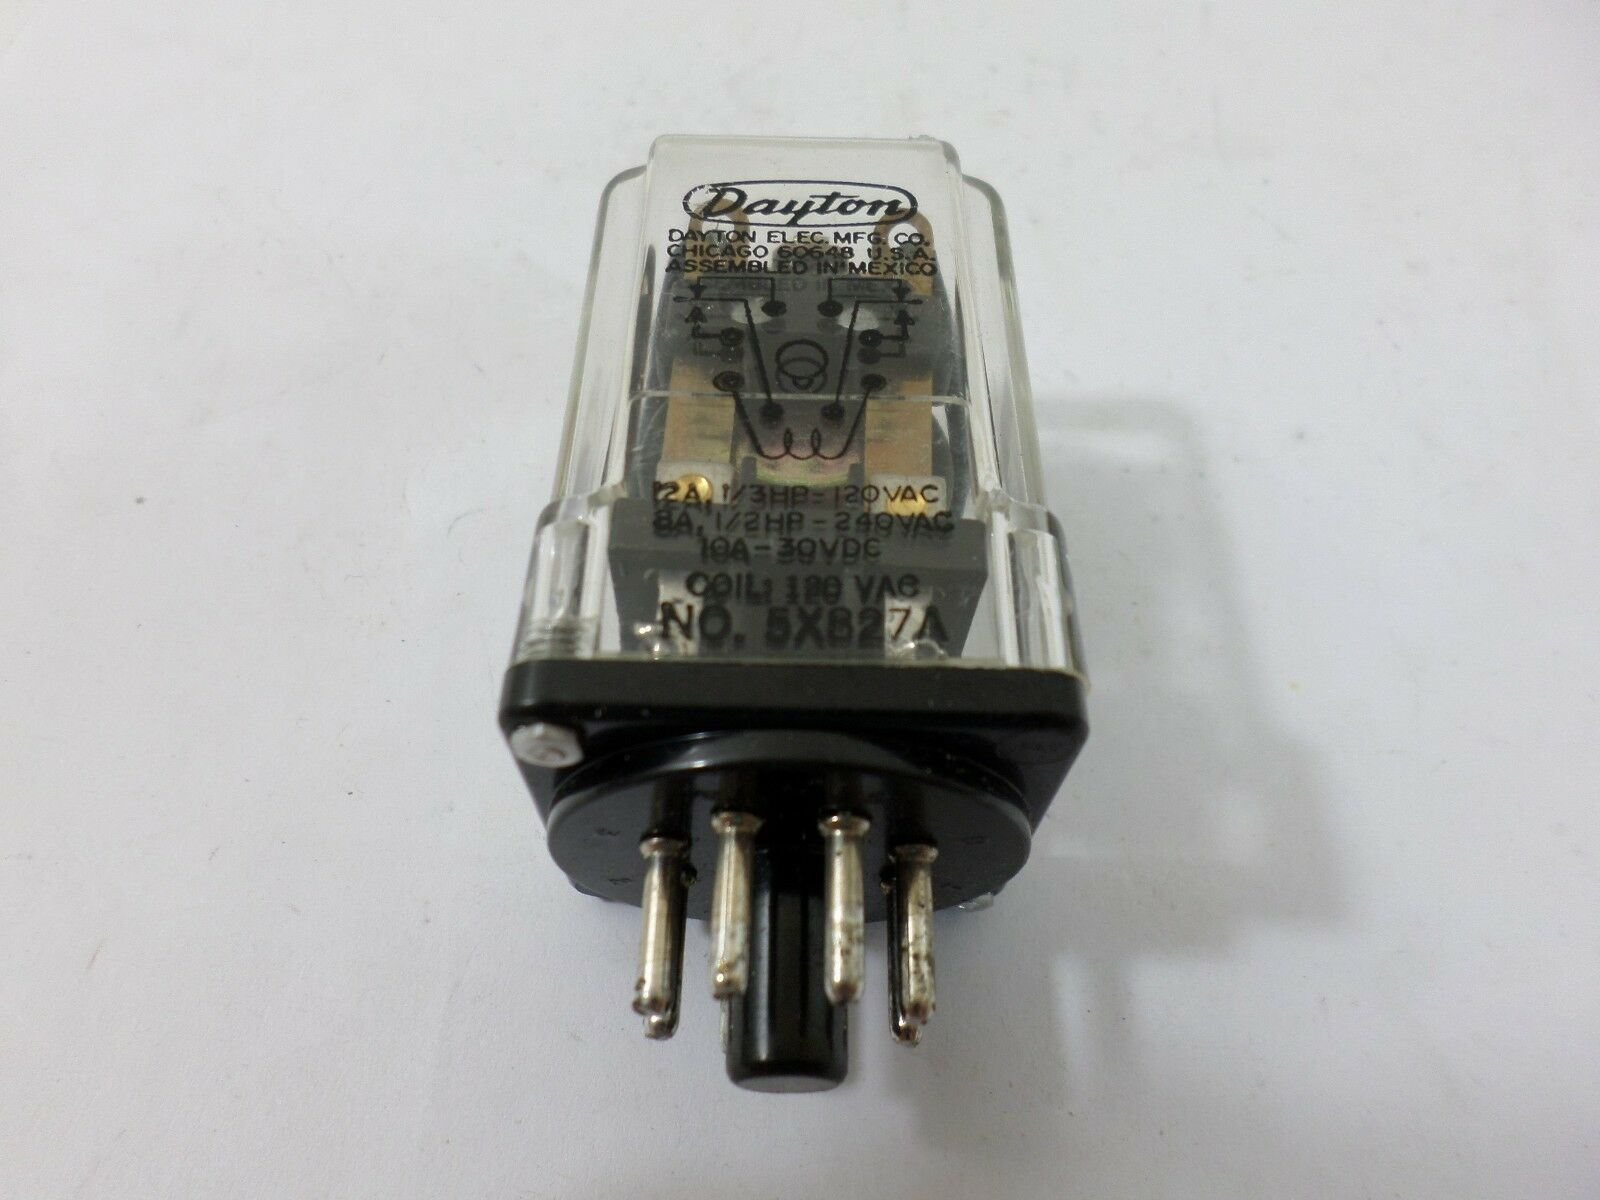 1egc5 Dayton Relay Wiring Diagram Library 12vdc Dpdt Relays Diagrams 5x827a 120vac 60hz 1 Of 9only Available